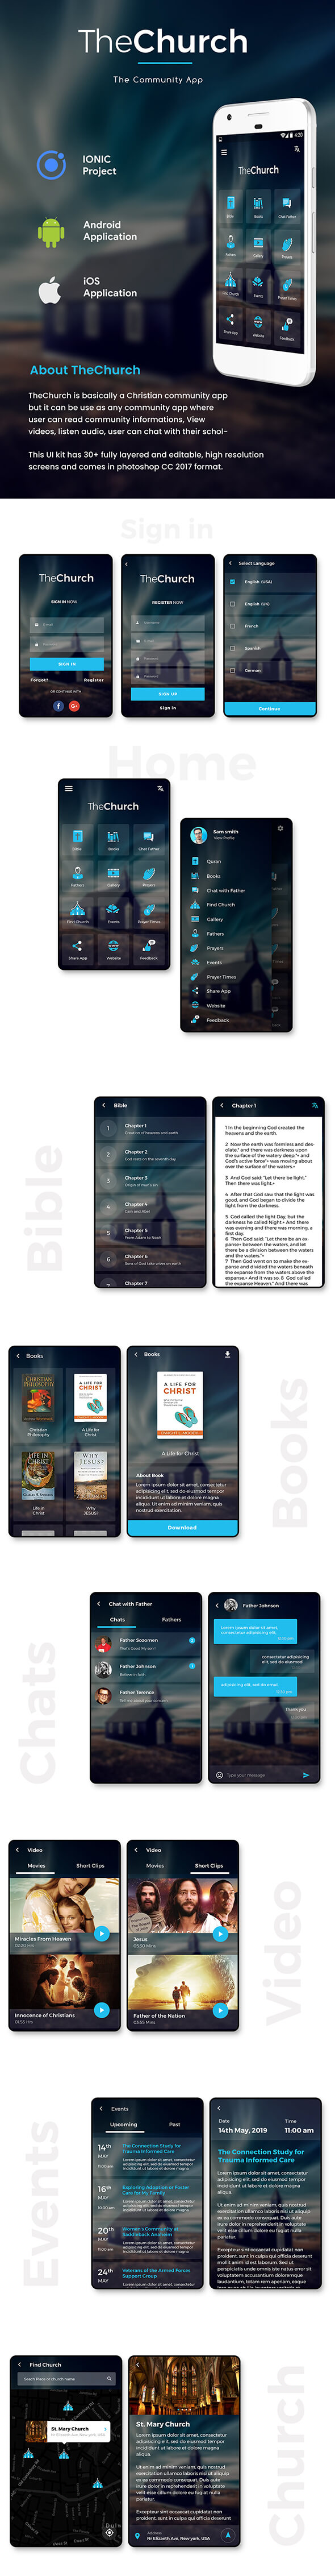 Church & Community Android + iOS App Template | HTML + Css IONIC 3 | OneGod - 2